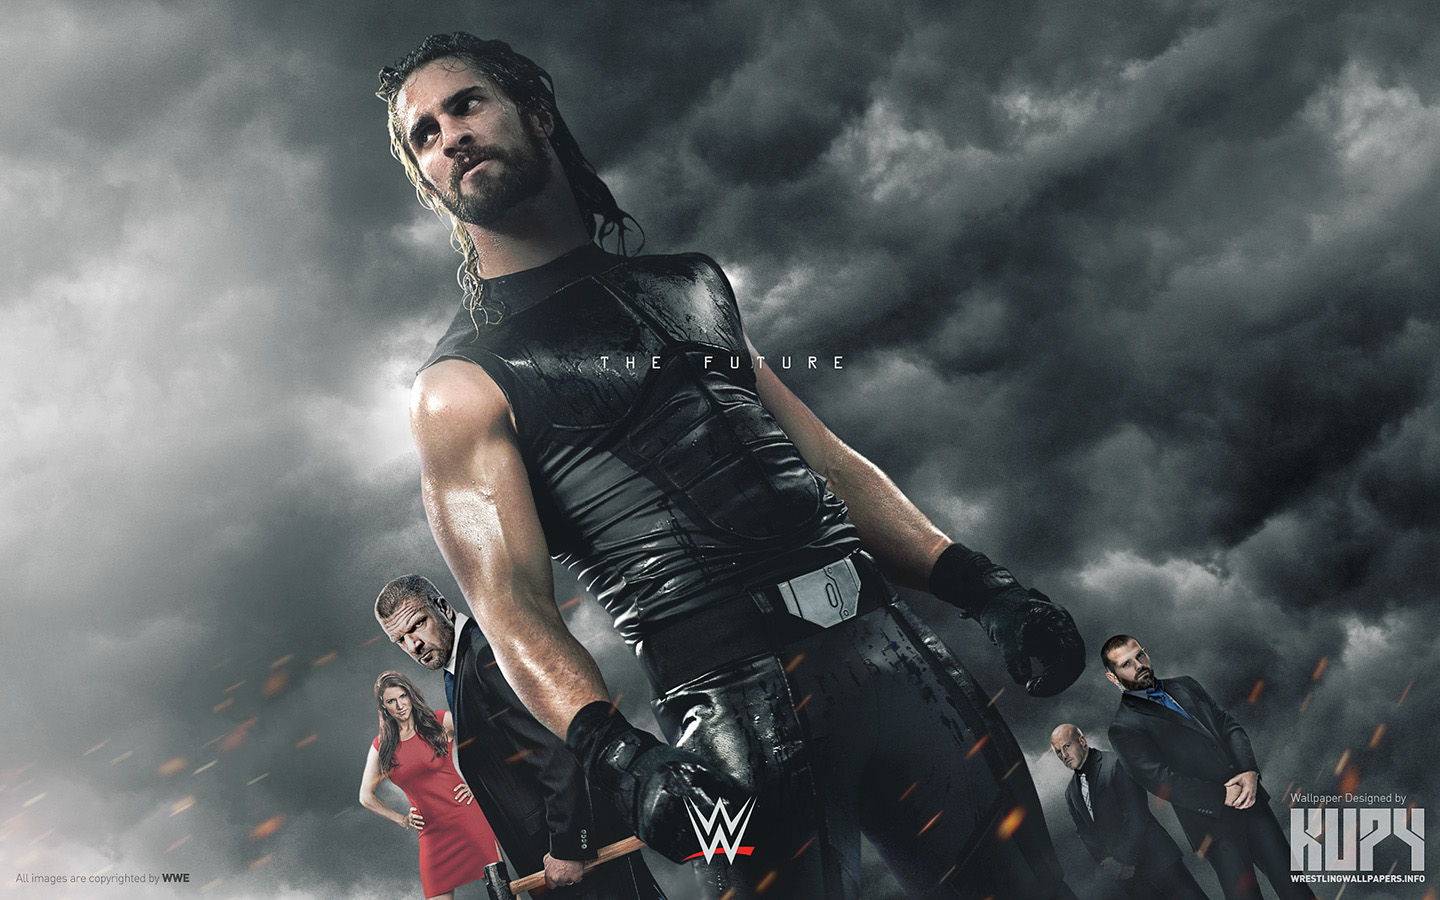 wwe images seth rollins - the future hd wallpaper and background